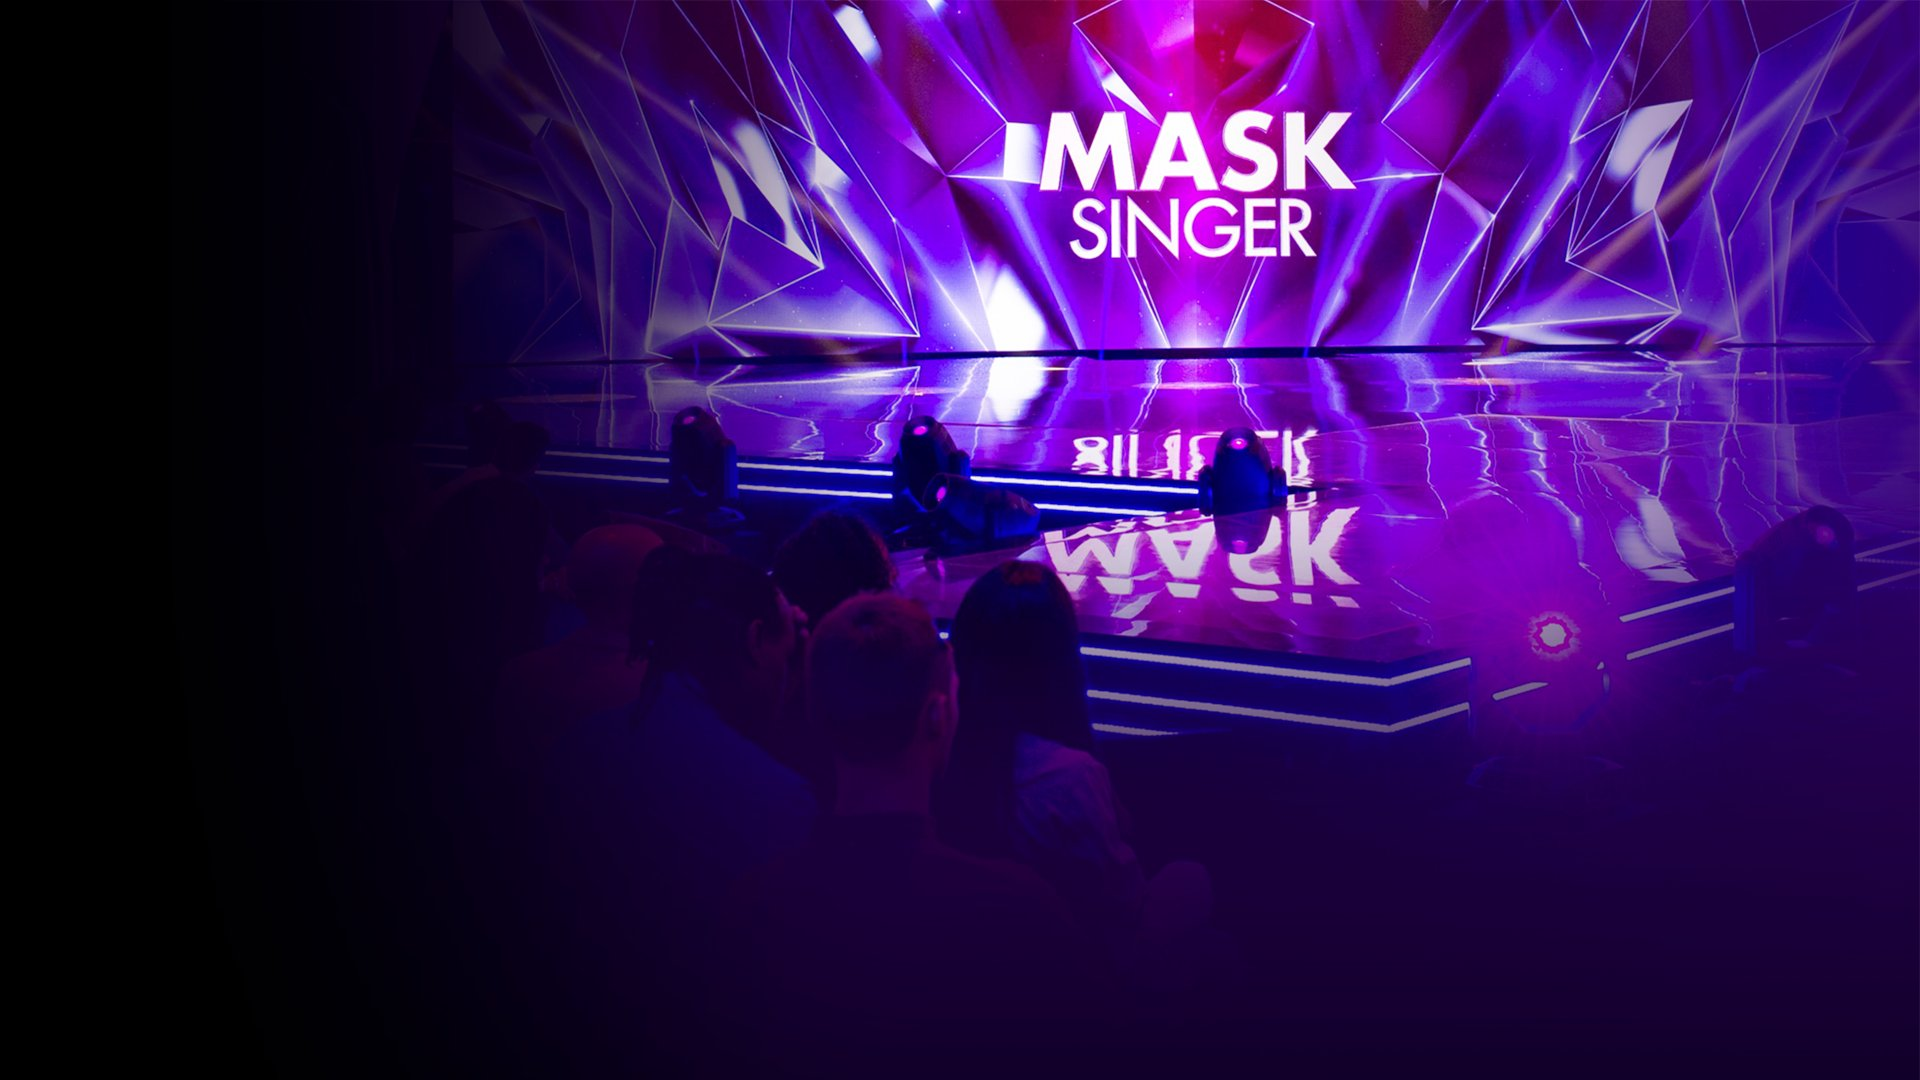 fond Mask Singer -  Robot chante « I will survive » de Gloria Gaynor